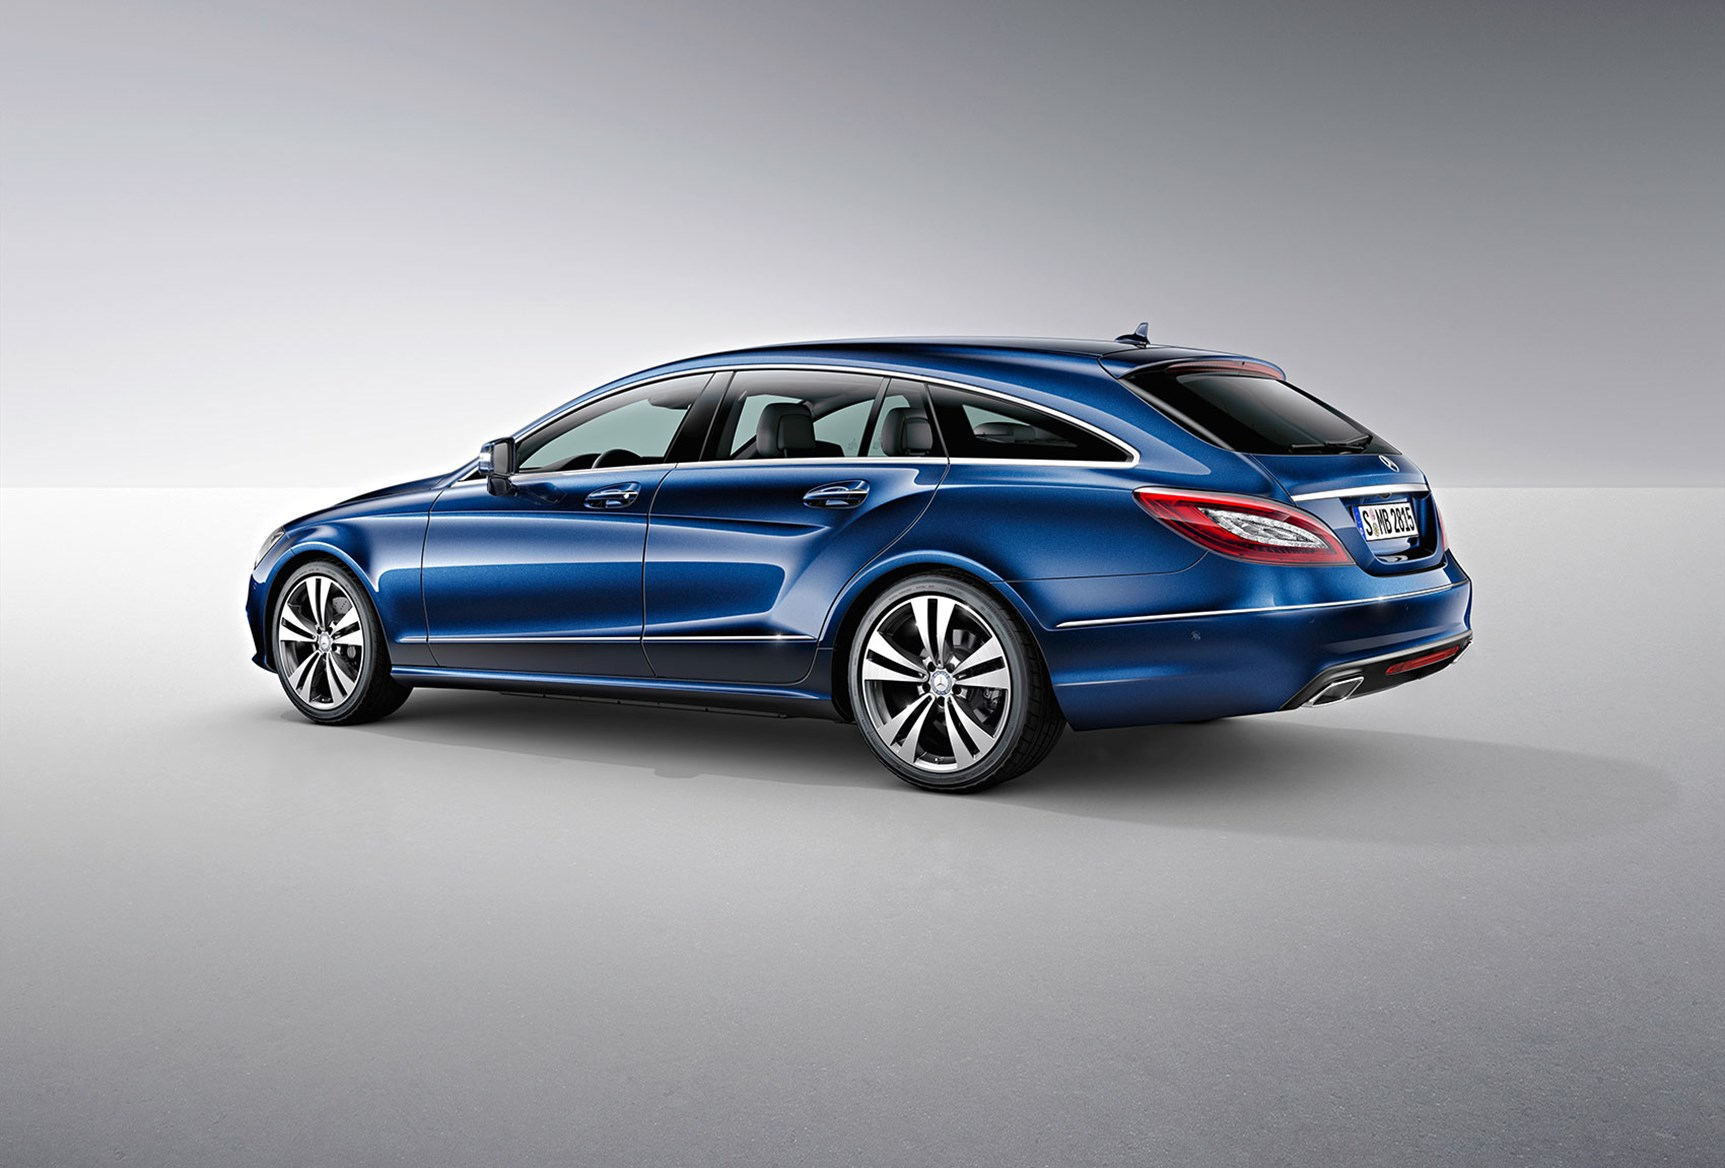 Mercedes Benz Kills The Shooting Brake For 2018 Mk3 Cls By Car Magazine